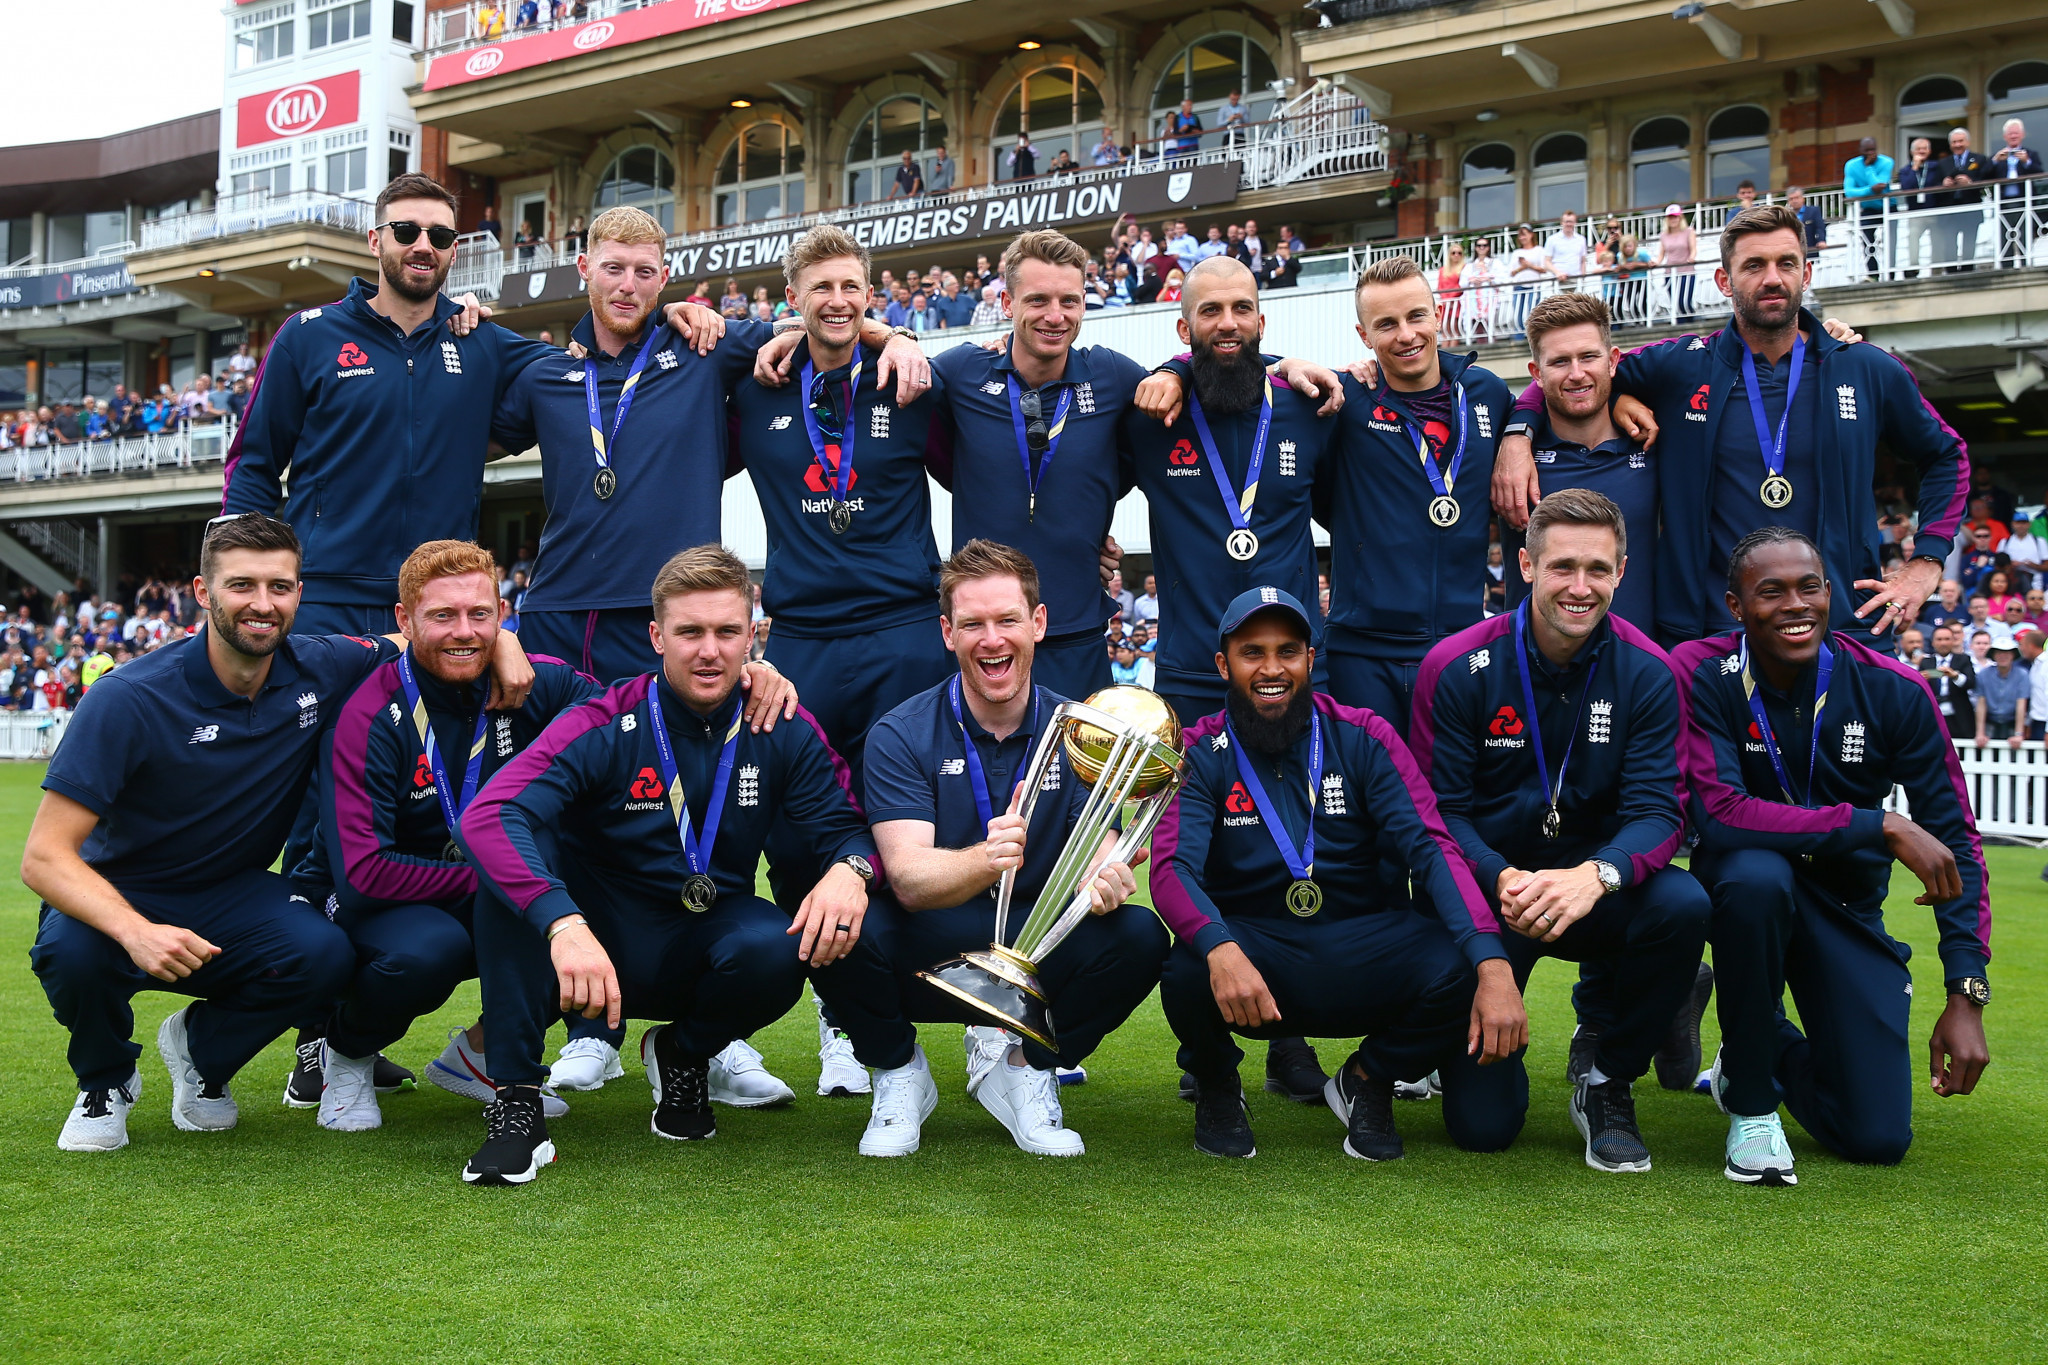 England celebrate winning the Cricket World Cup final against New Zealand ©Getty Images